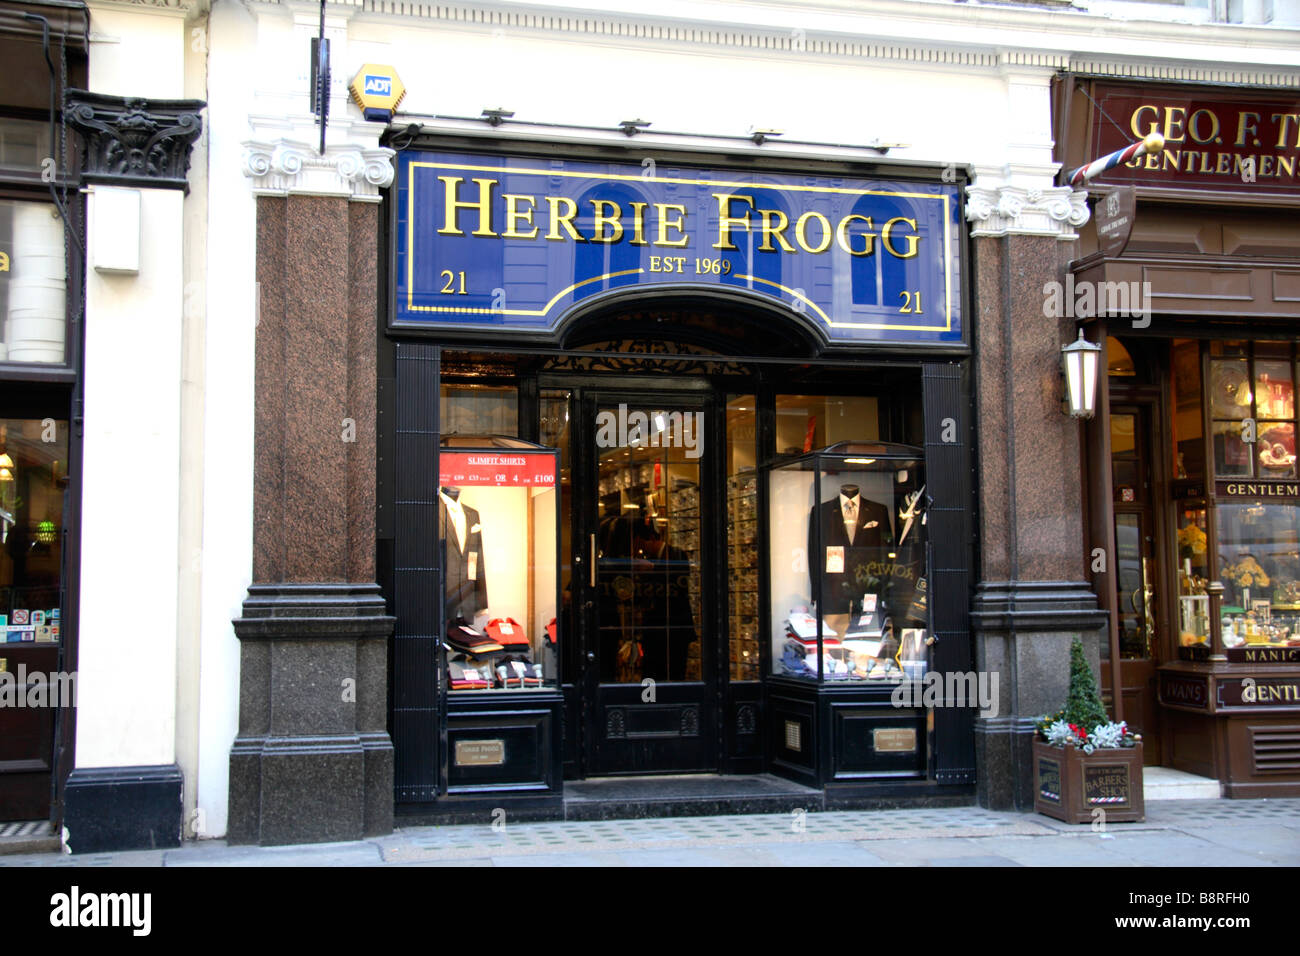 The shop front of Herbie Frogg, a tailored designer clothing shop, London.  Feb 2009 fdb968a0971